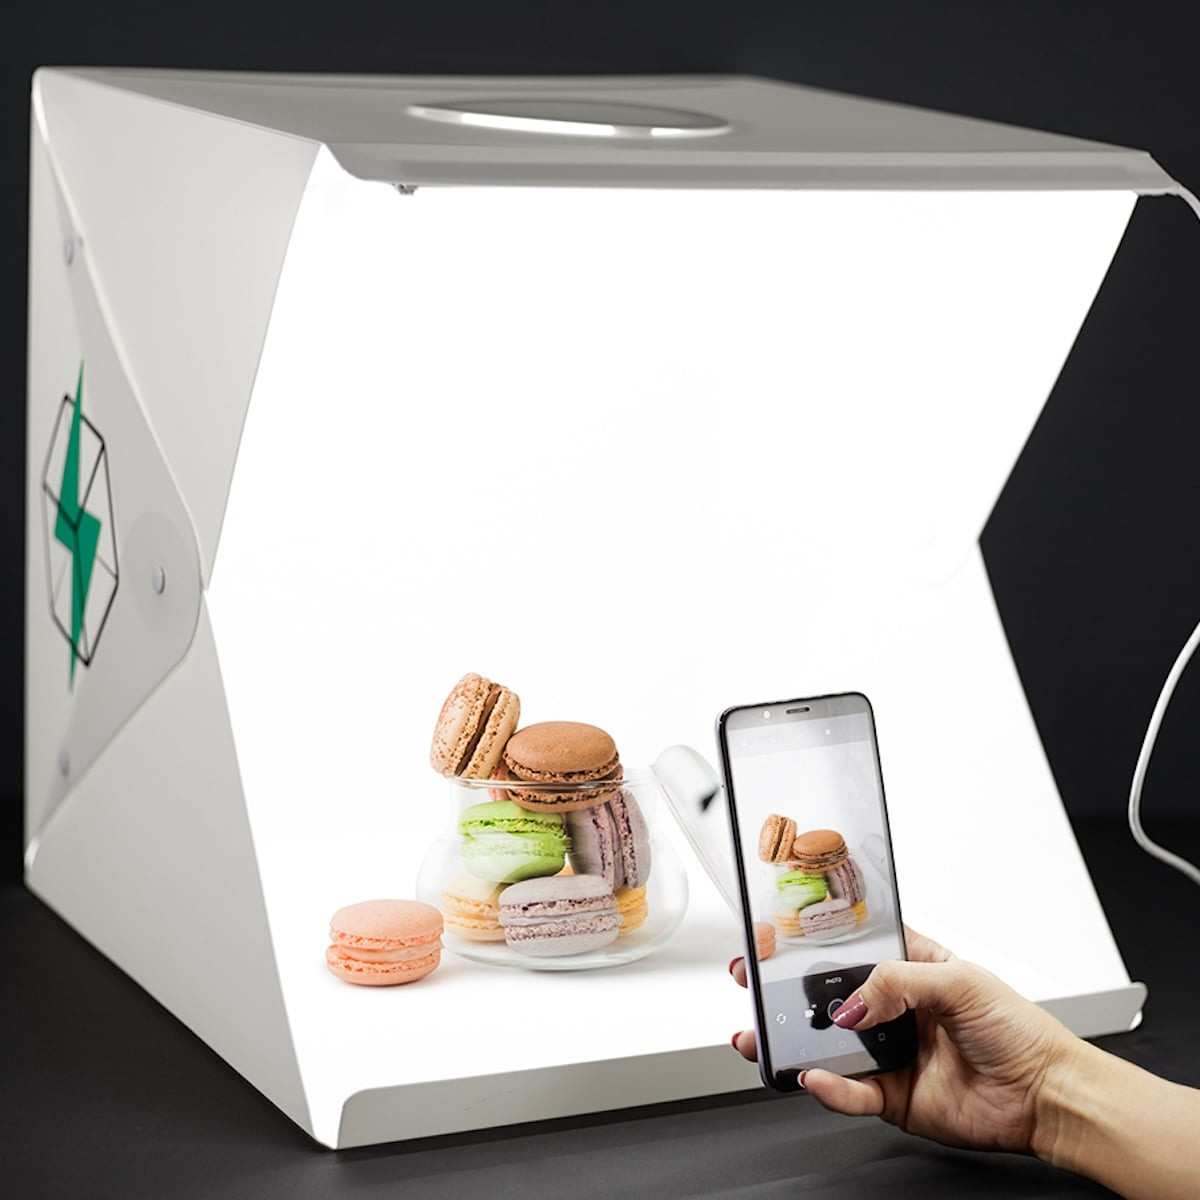 This LED lightbox gives your photography that professional look for art or advertising thumbnail